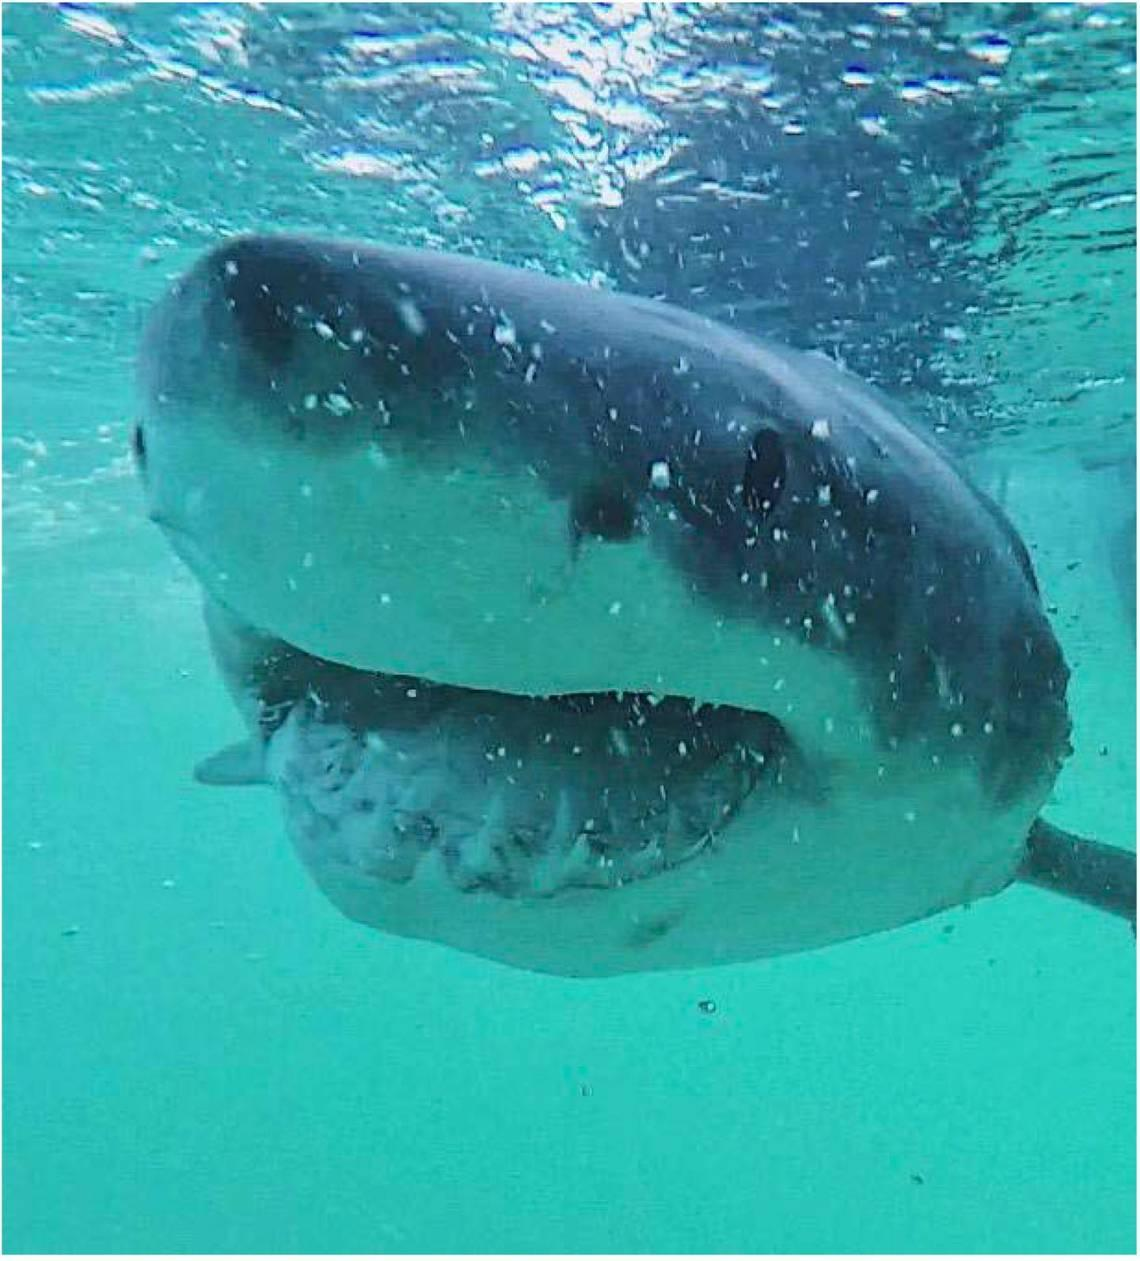 500,000 sharks may have to die in the fight against COVID-19. Here's why